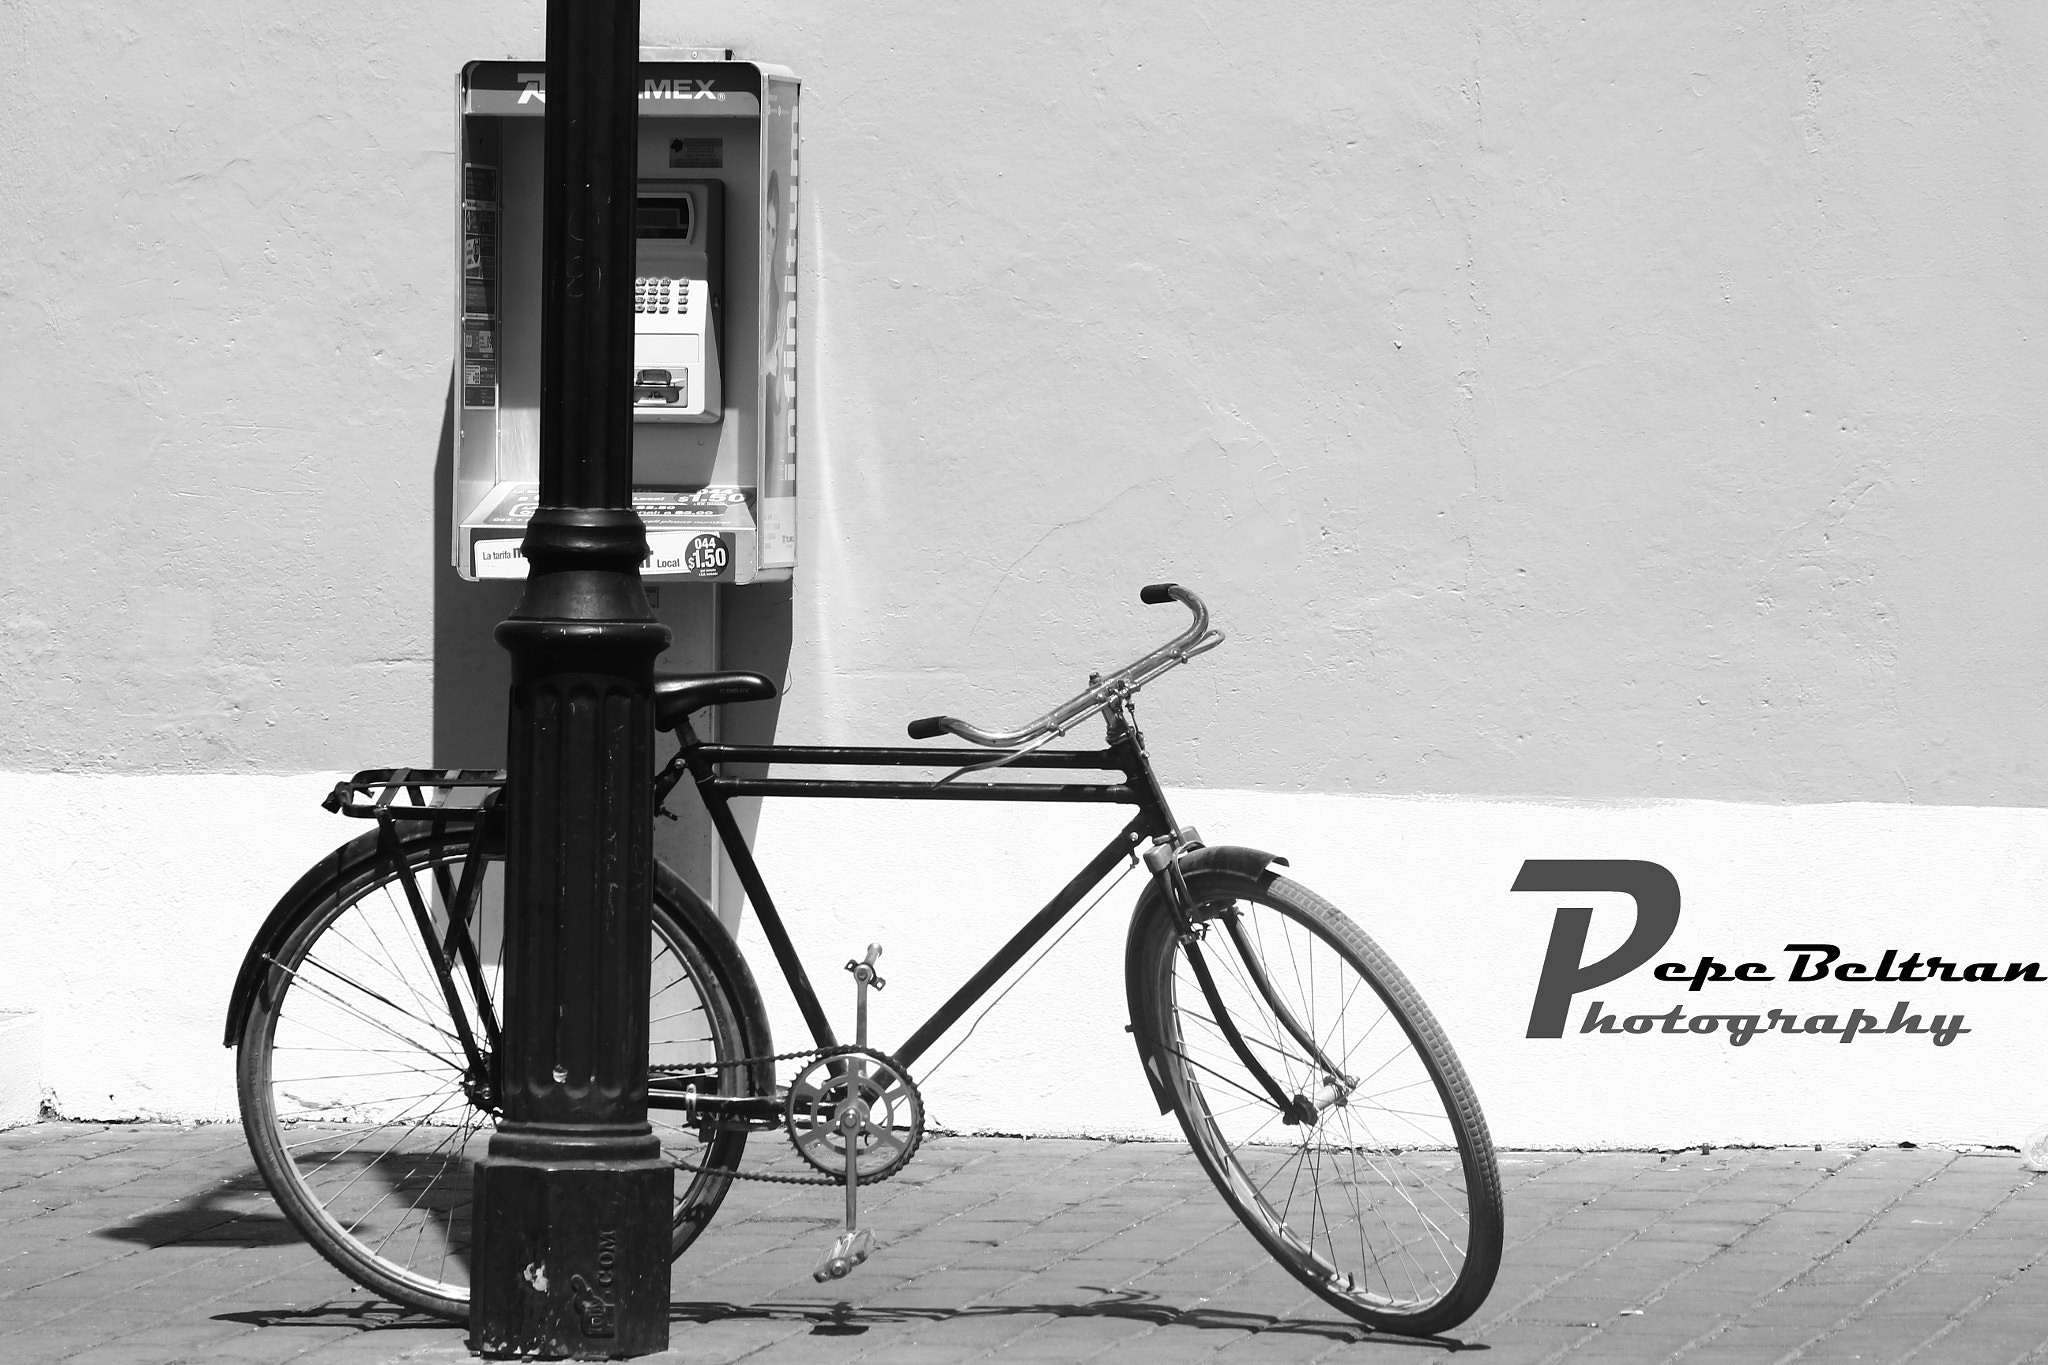 Photograph Parked Bike by Pepe Beltran on 500px